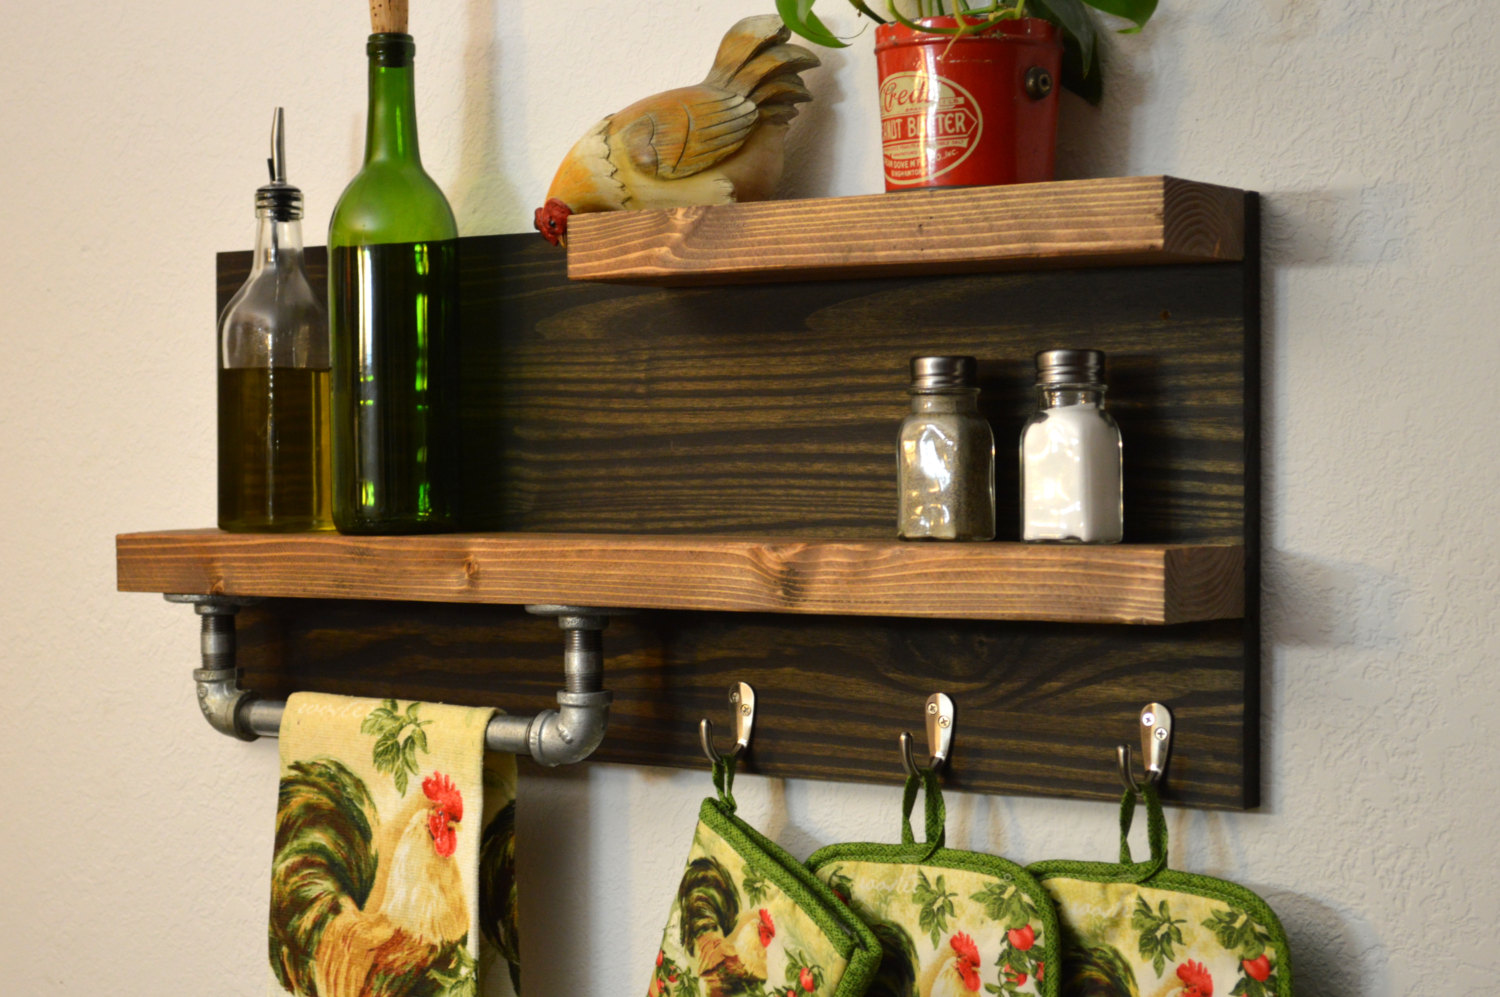 Small Wooden Spice Rack to Also Display Decorative Vase and Bottles